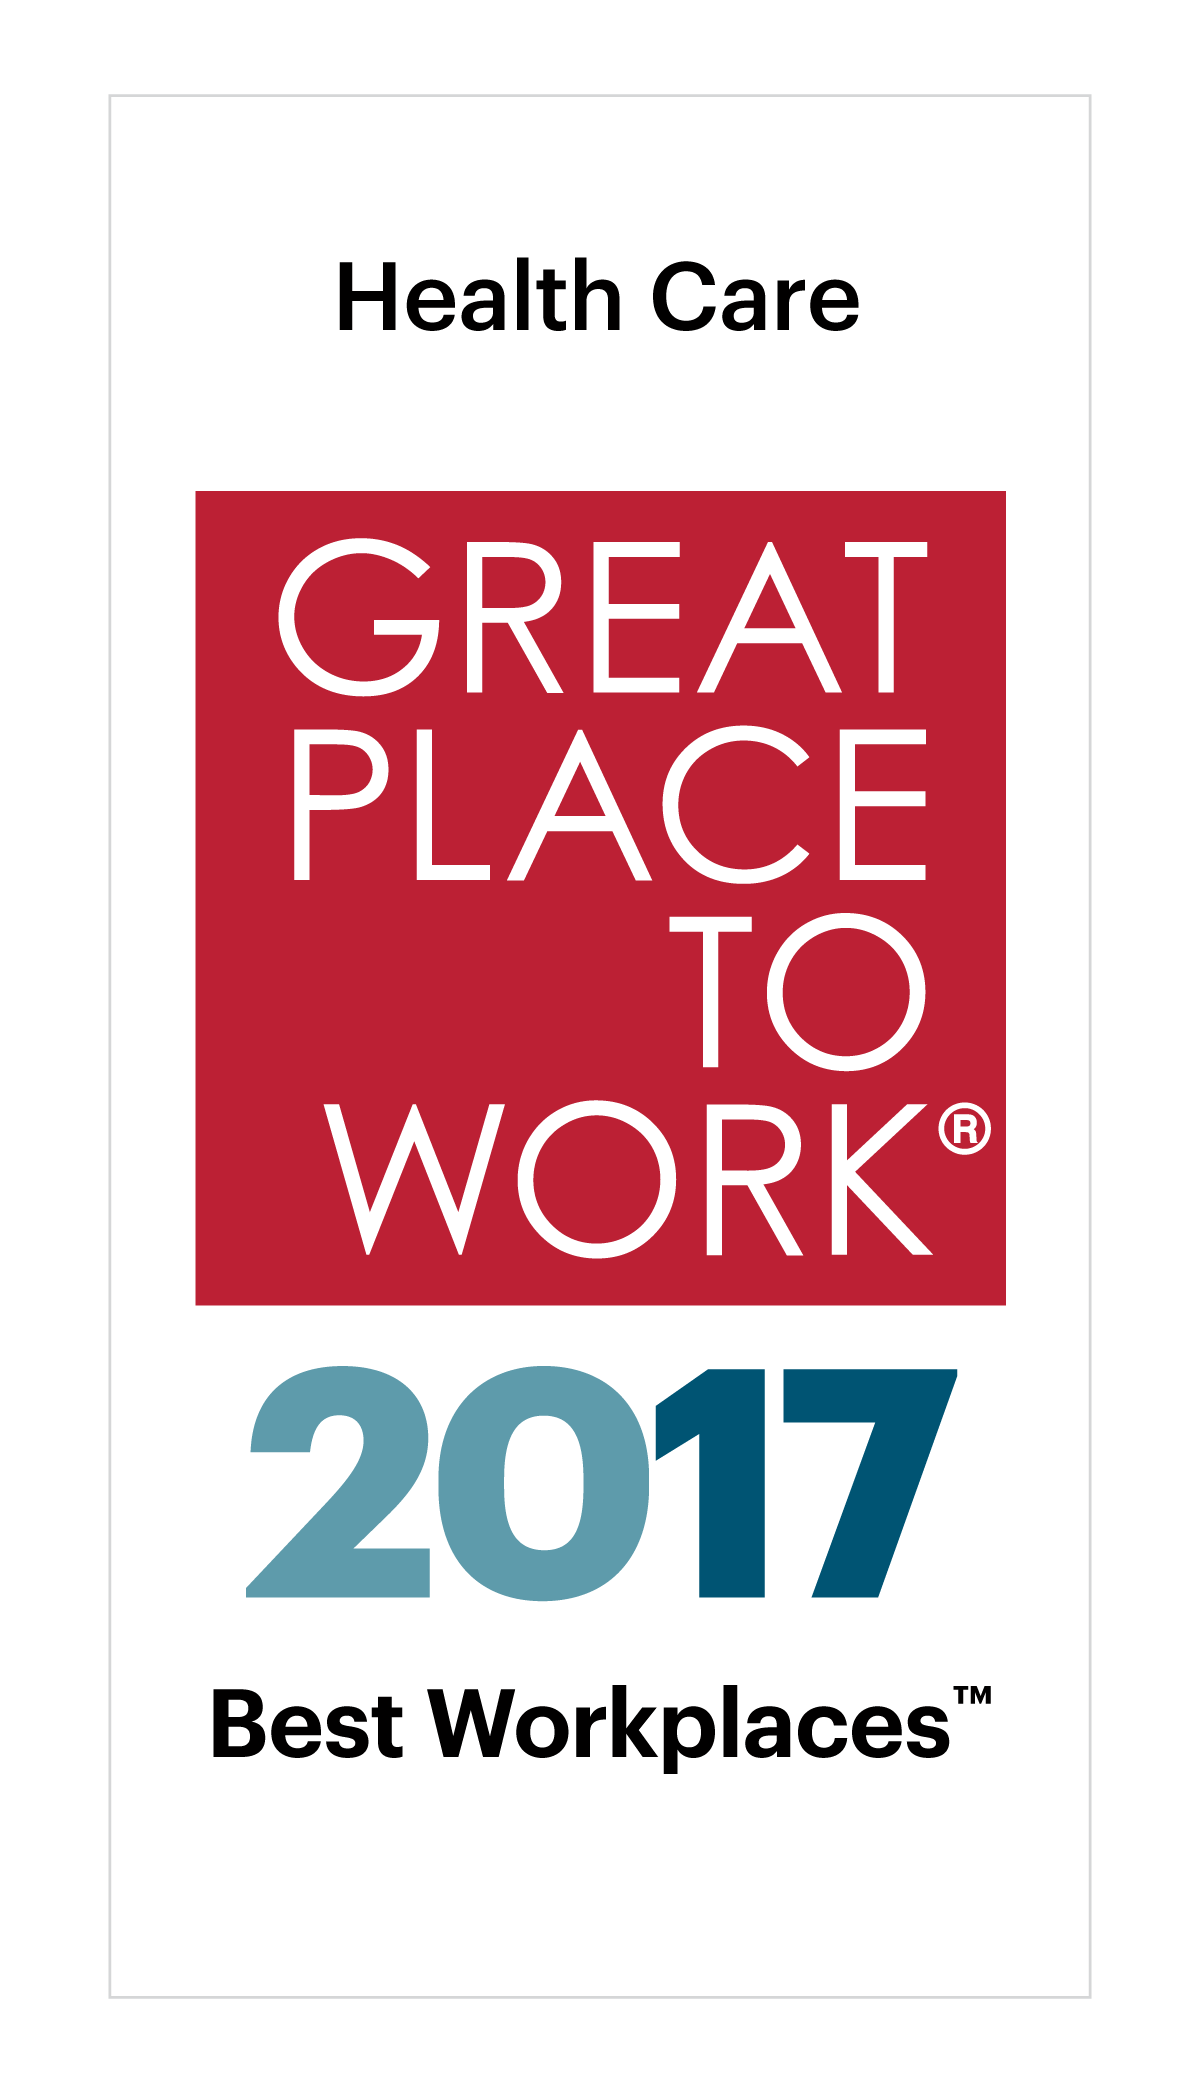 Advance physical therapy magazine - Fortune Magazine Named Professional Among Top 25 Best Workplaces In Health Care